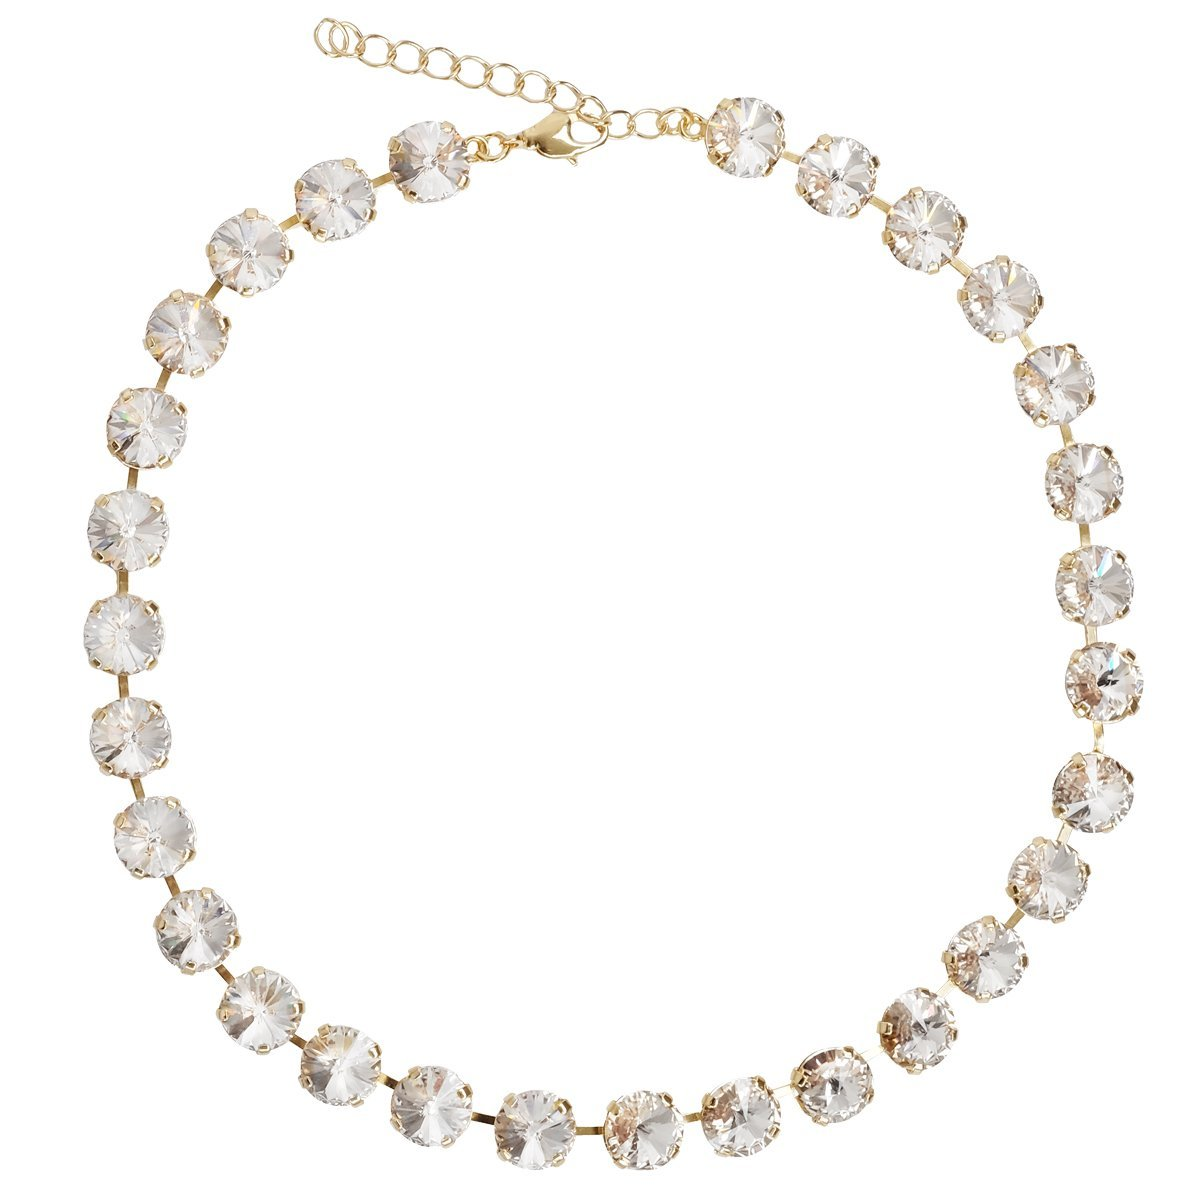 Jackie_Necklace_Crystal_web_3fdec635-7485-4f80-9f18-3fc8b85113a5_1800x1800